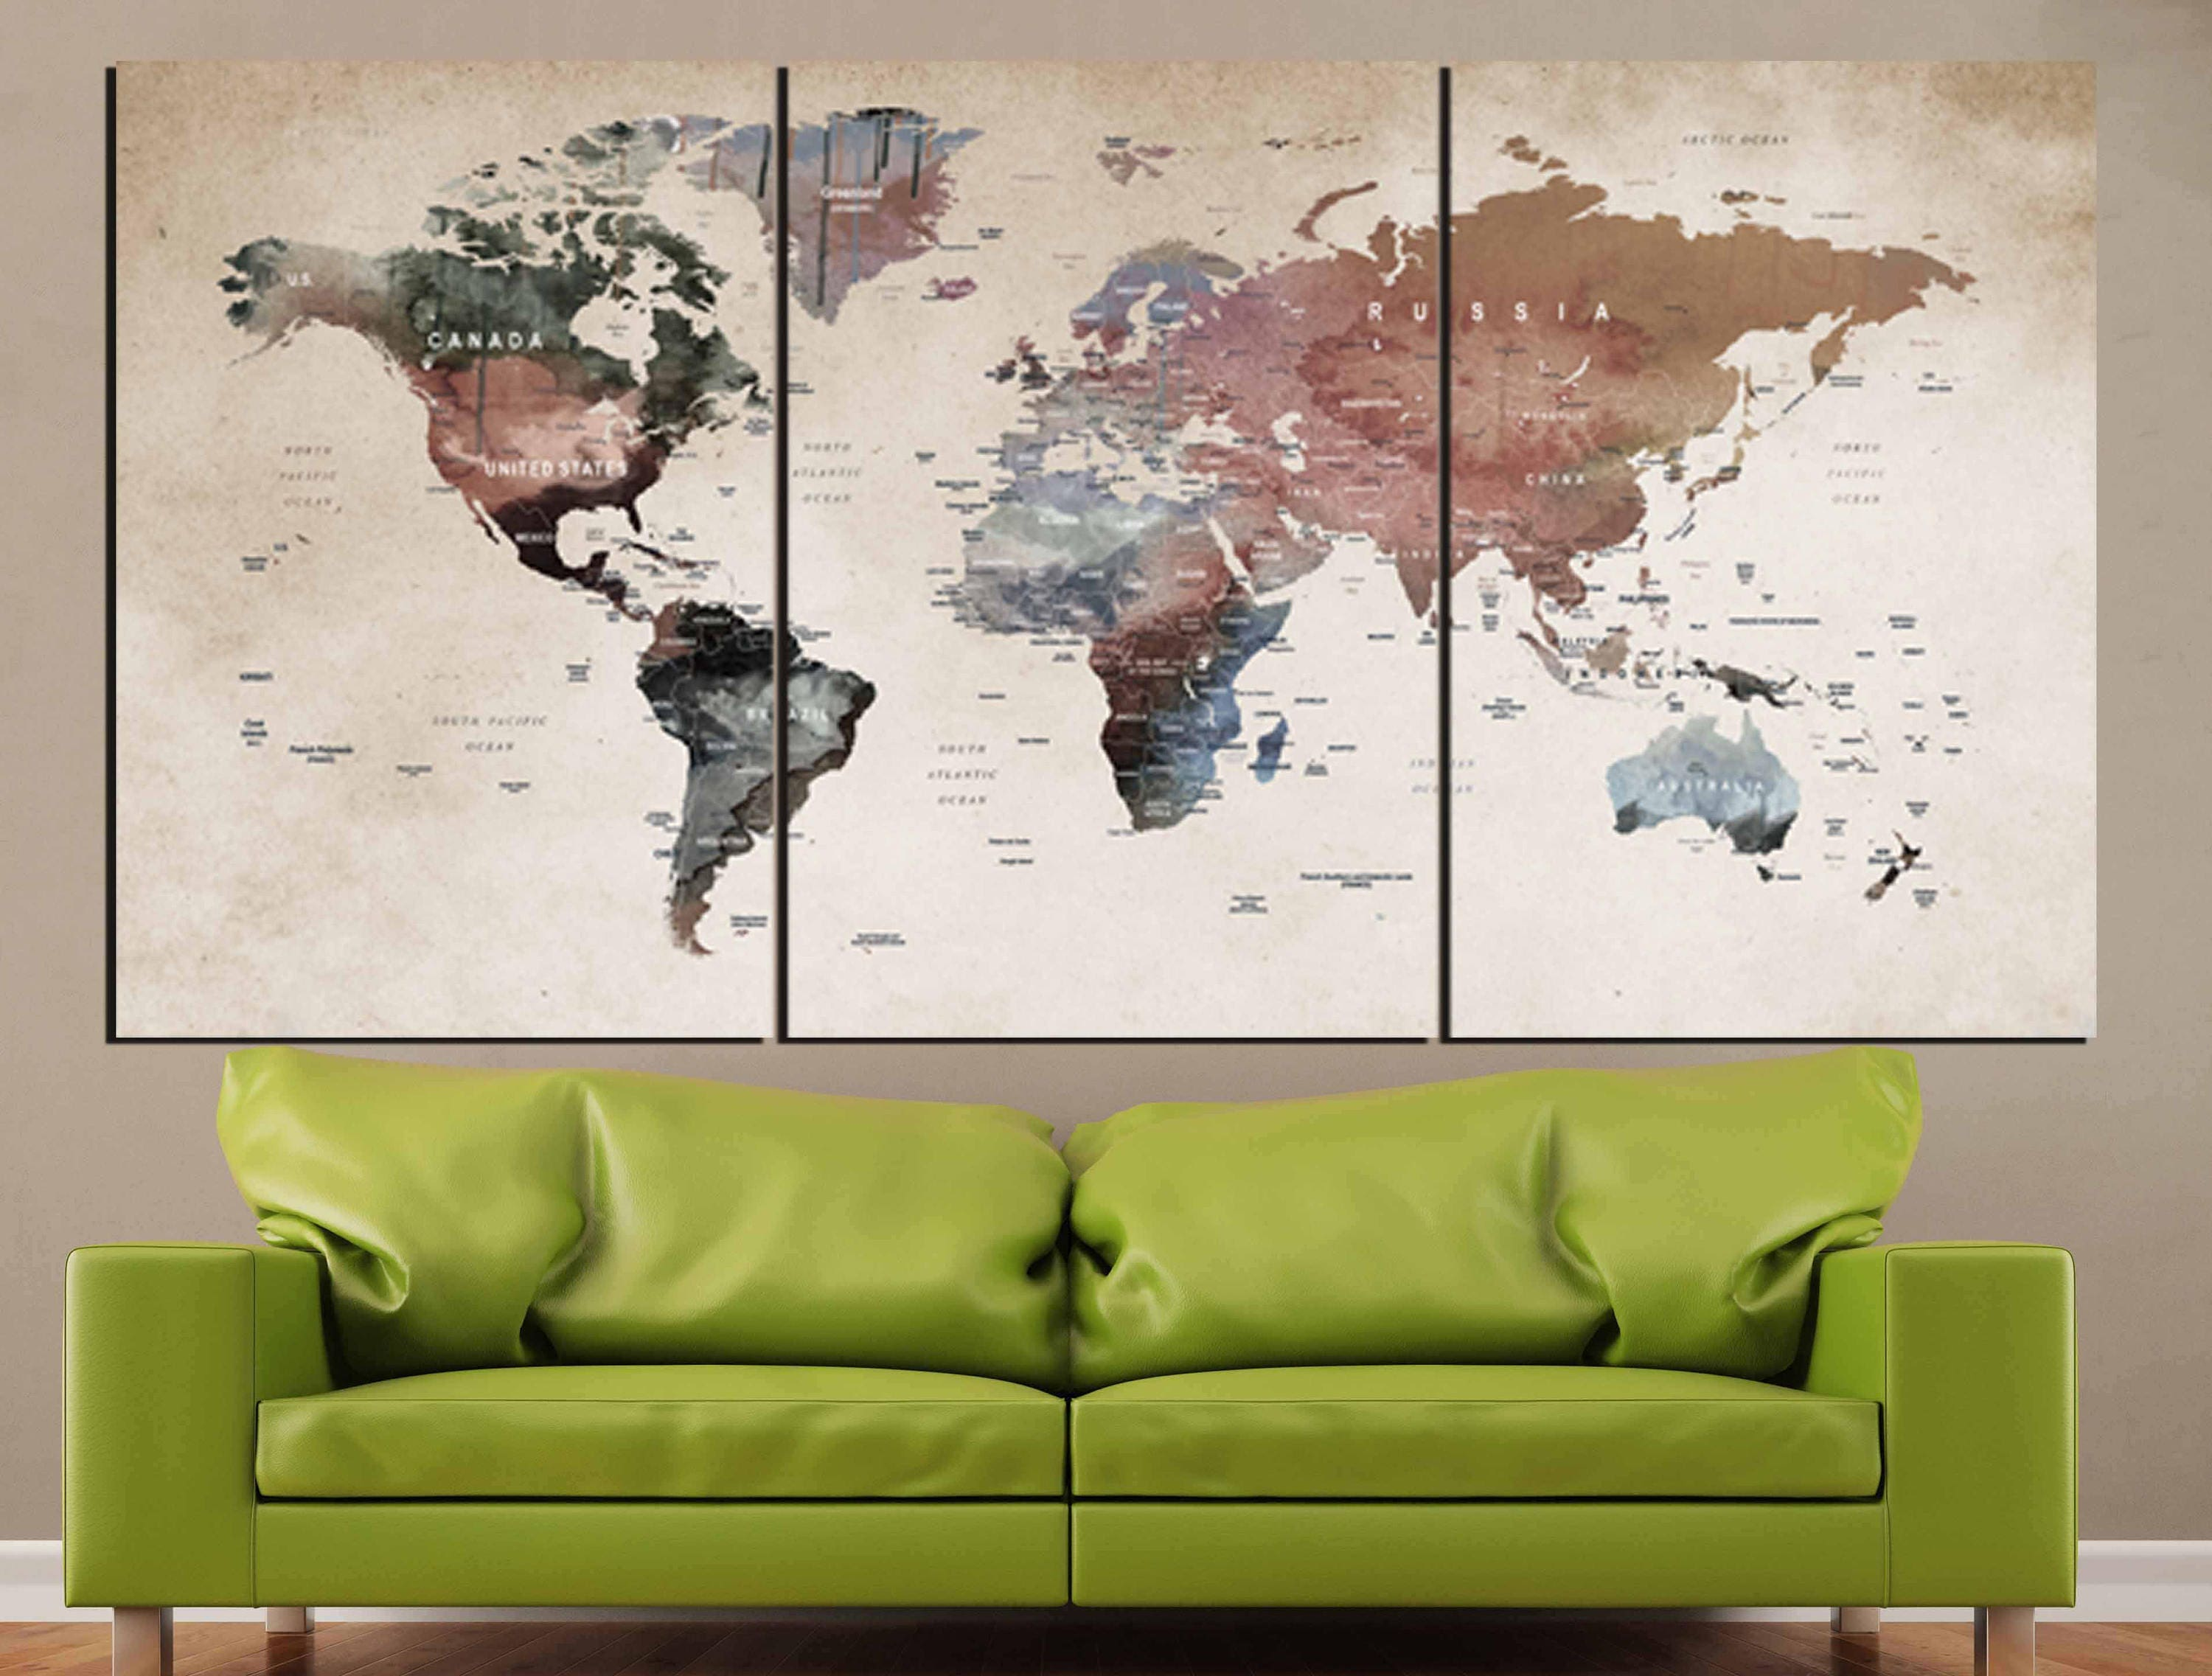 World map wall artworld map canvasworld map printlarge world map gallery photo gallery photo gallery photo gumiabroncs Choice Image